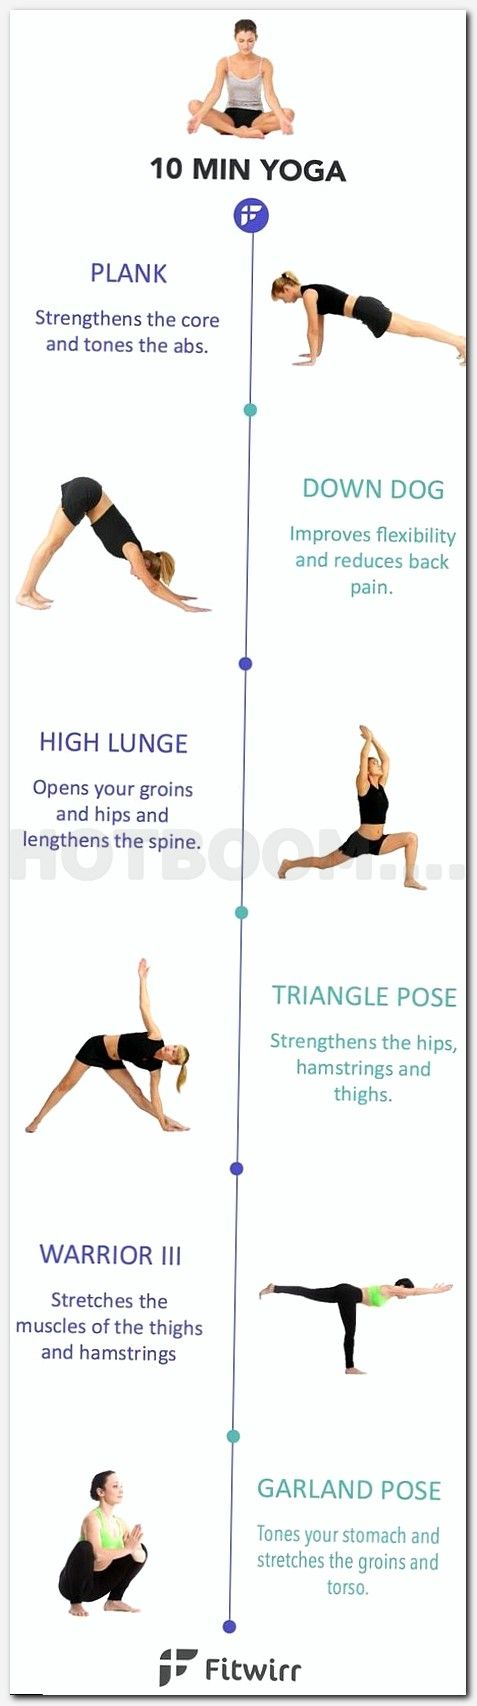 yoga poses for buttocks reduction, hatha yoga definition, men hot yoga, what is the weight of human brain, diet hypnotherapy, value of yoga in our life, ways to do yoga, how does yoga work, best way to take spirulina powder, how to get good at yoga at home, the best exercise to burn belly fat, reasons for yoga, some yoga exercises, most successful way to lose weight, yoga for stomach toning, the number one way to lose weight